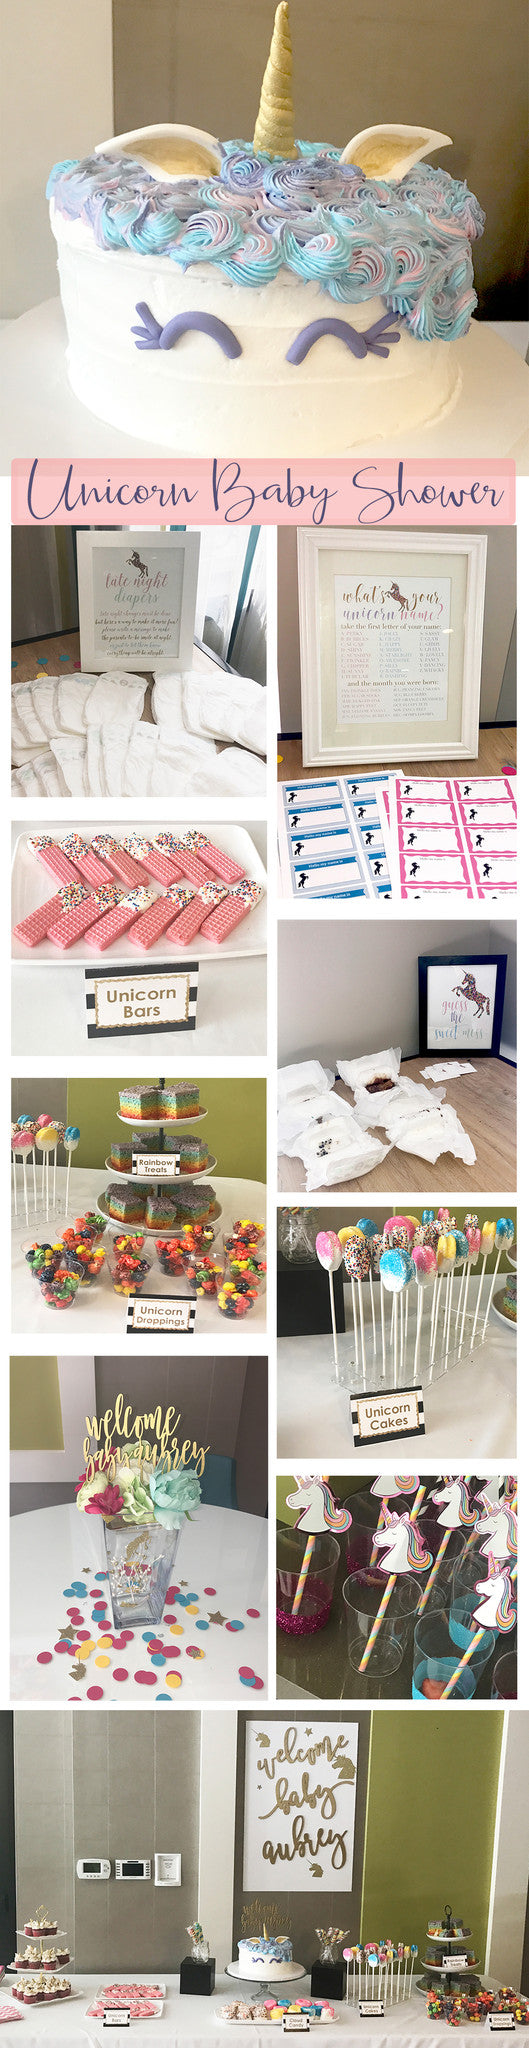 Unicorn Baby Shower Ideas and Inspiration - Pretty Collected